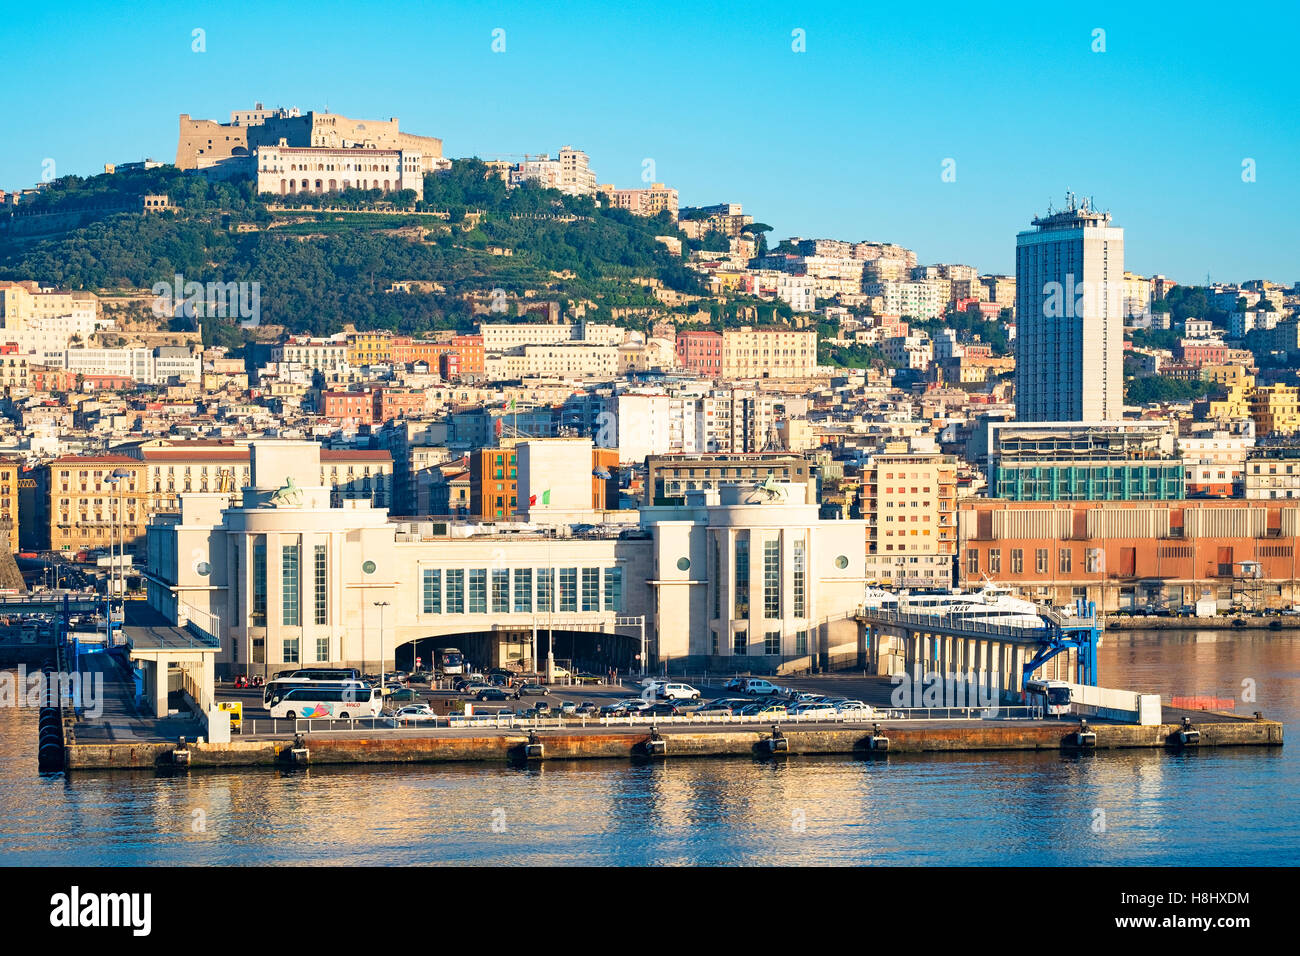 The port entrance of Naples, Italy - Stock Image